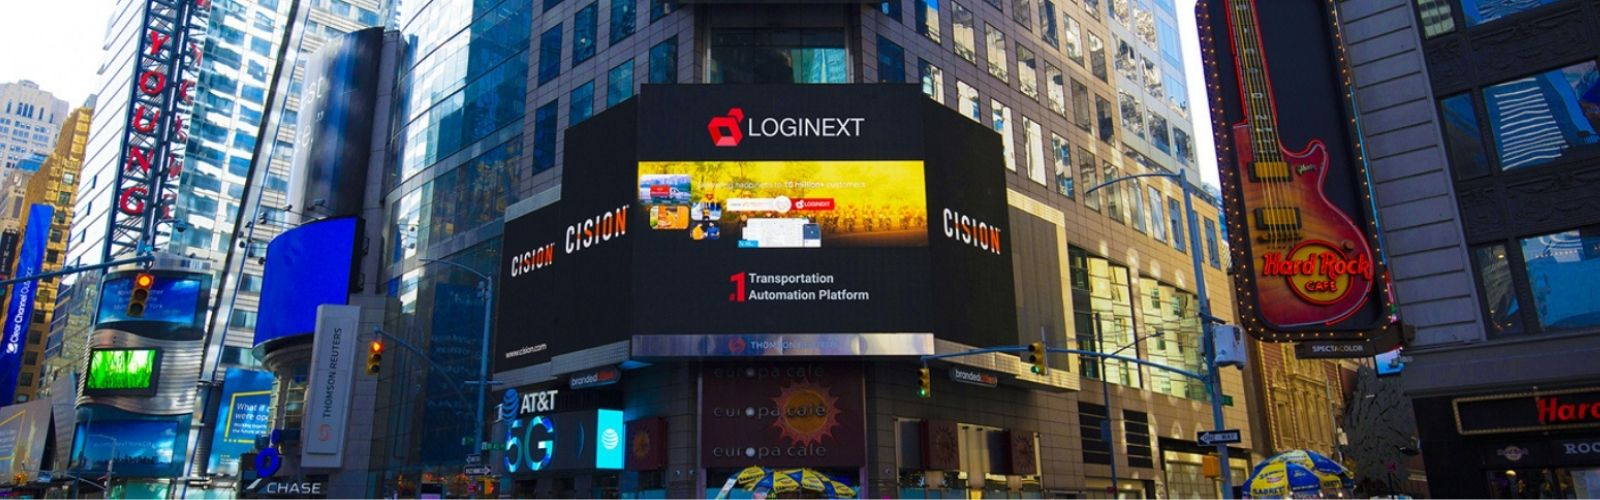 LogiNext on New York Times Square!